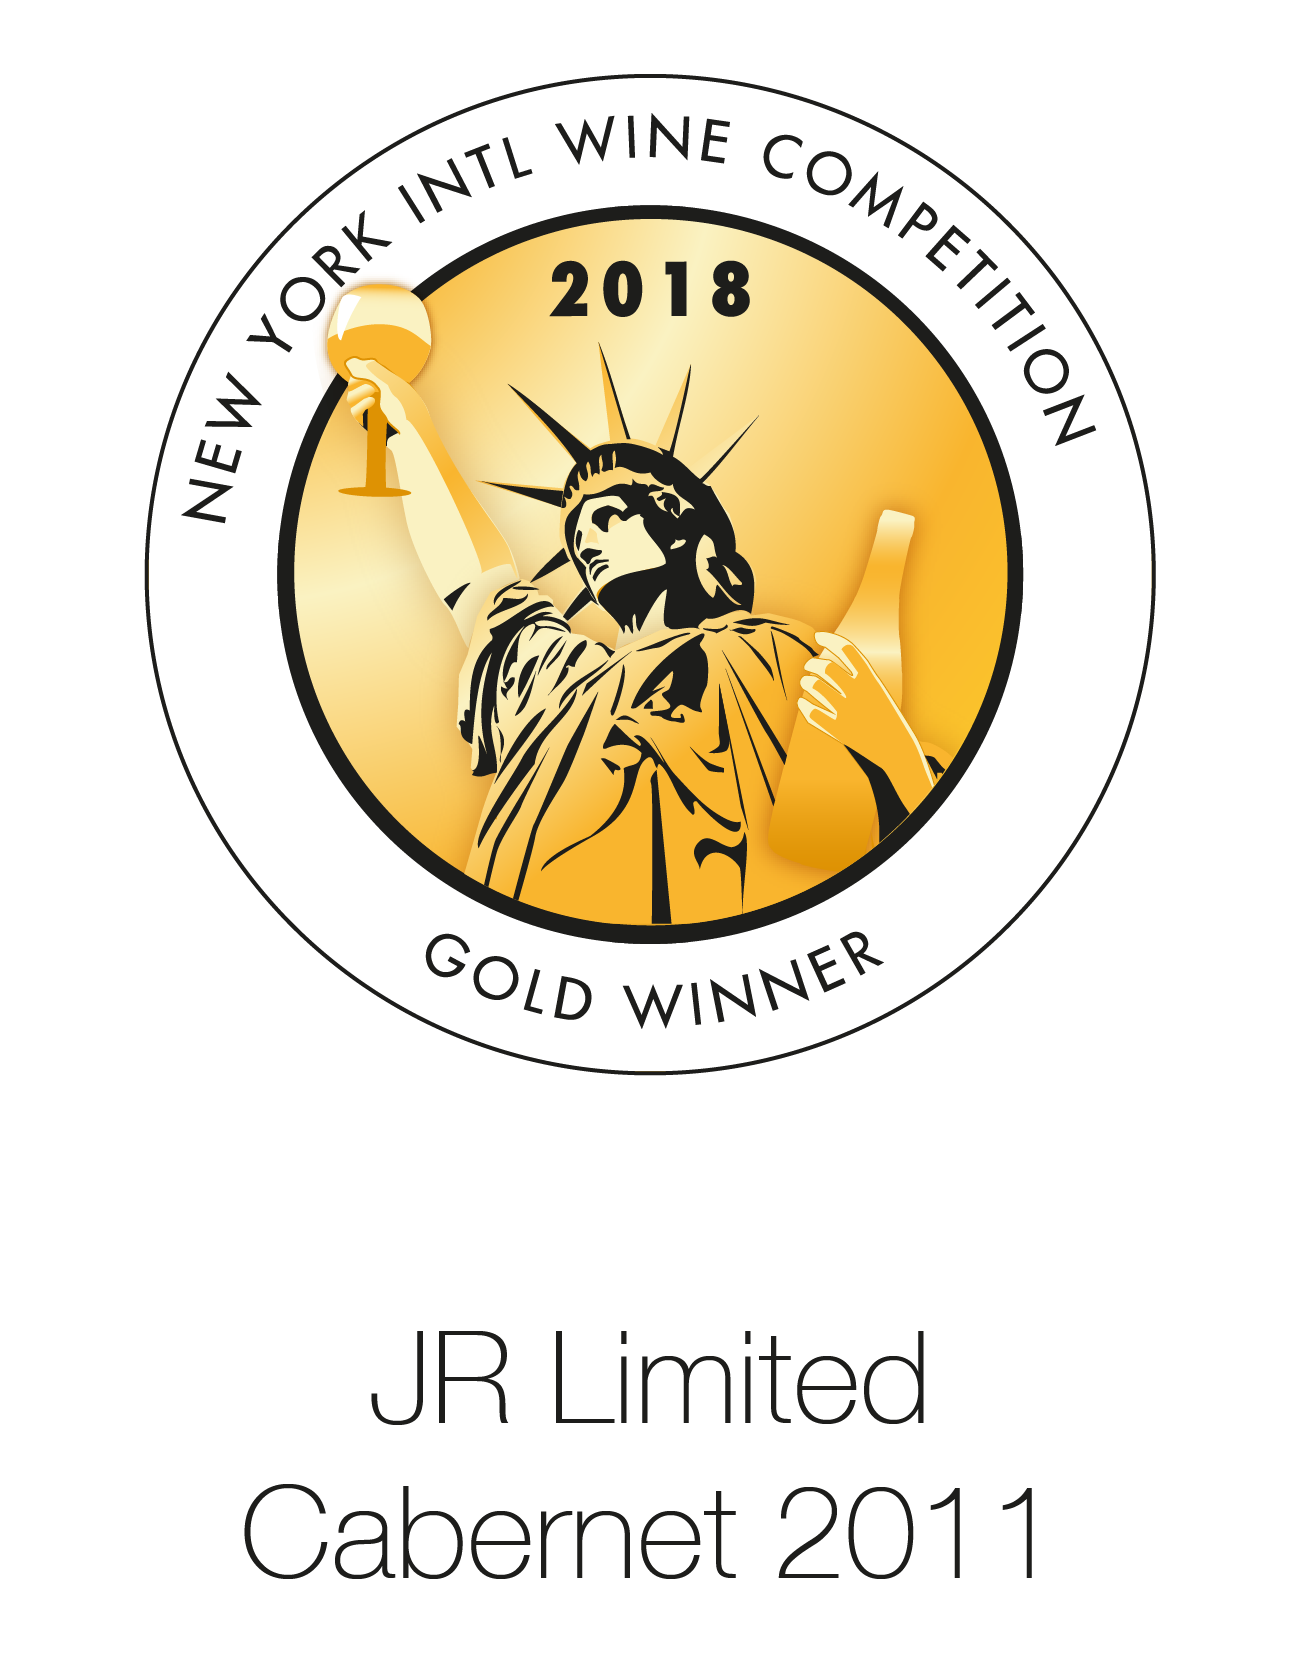 JR Cabernet Sauvignon 2011 Limited Edition London Wine Competition 2018